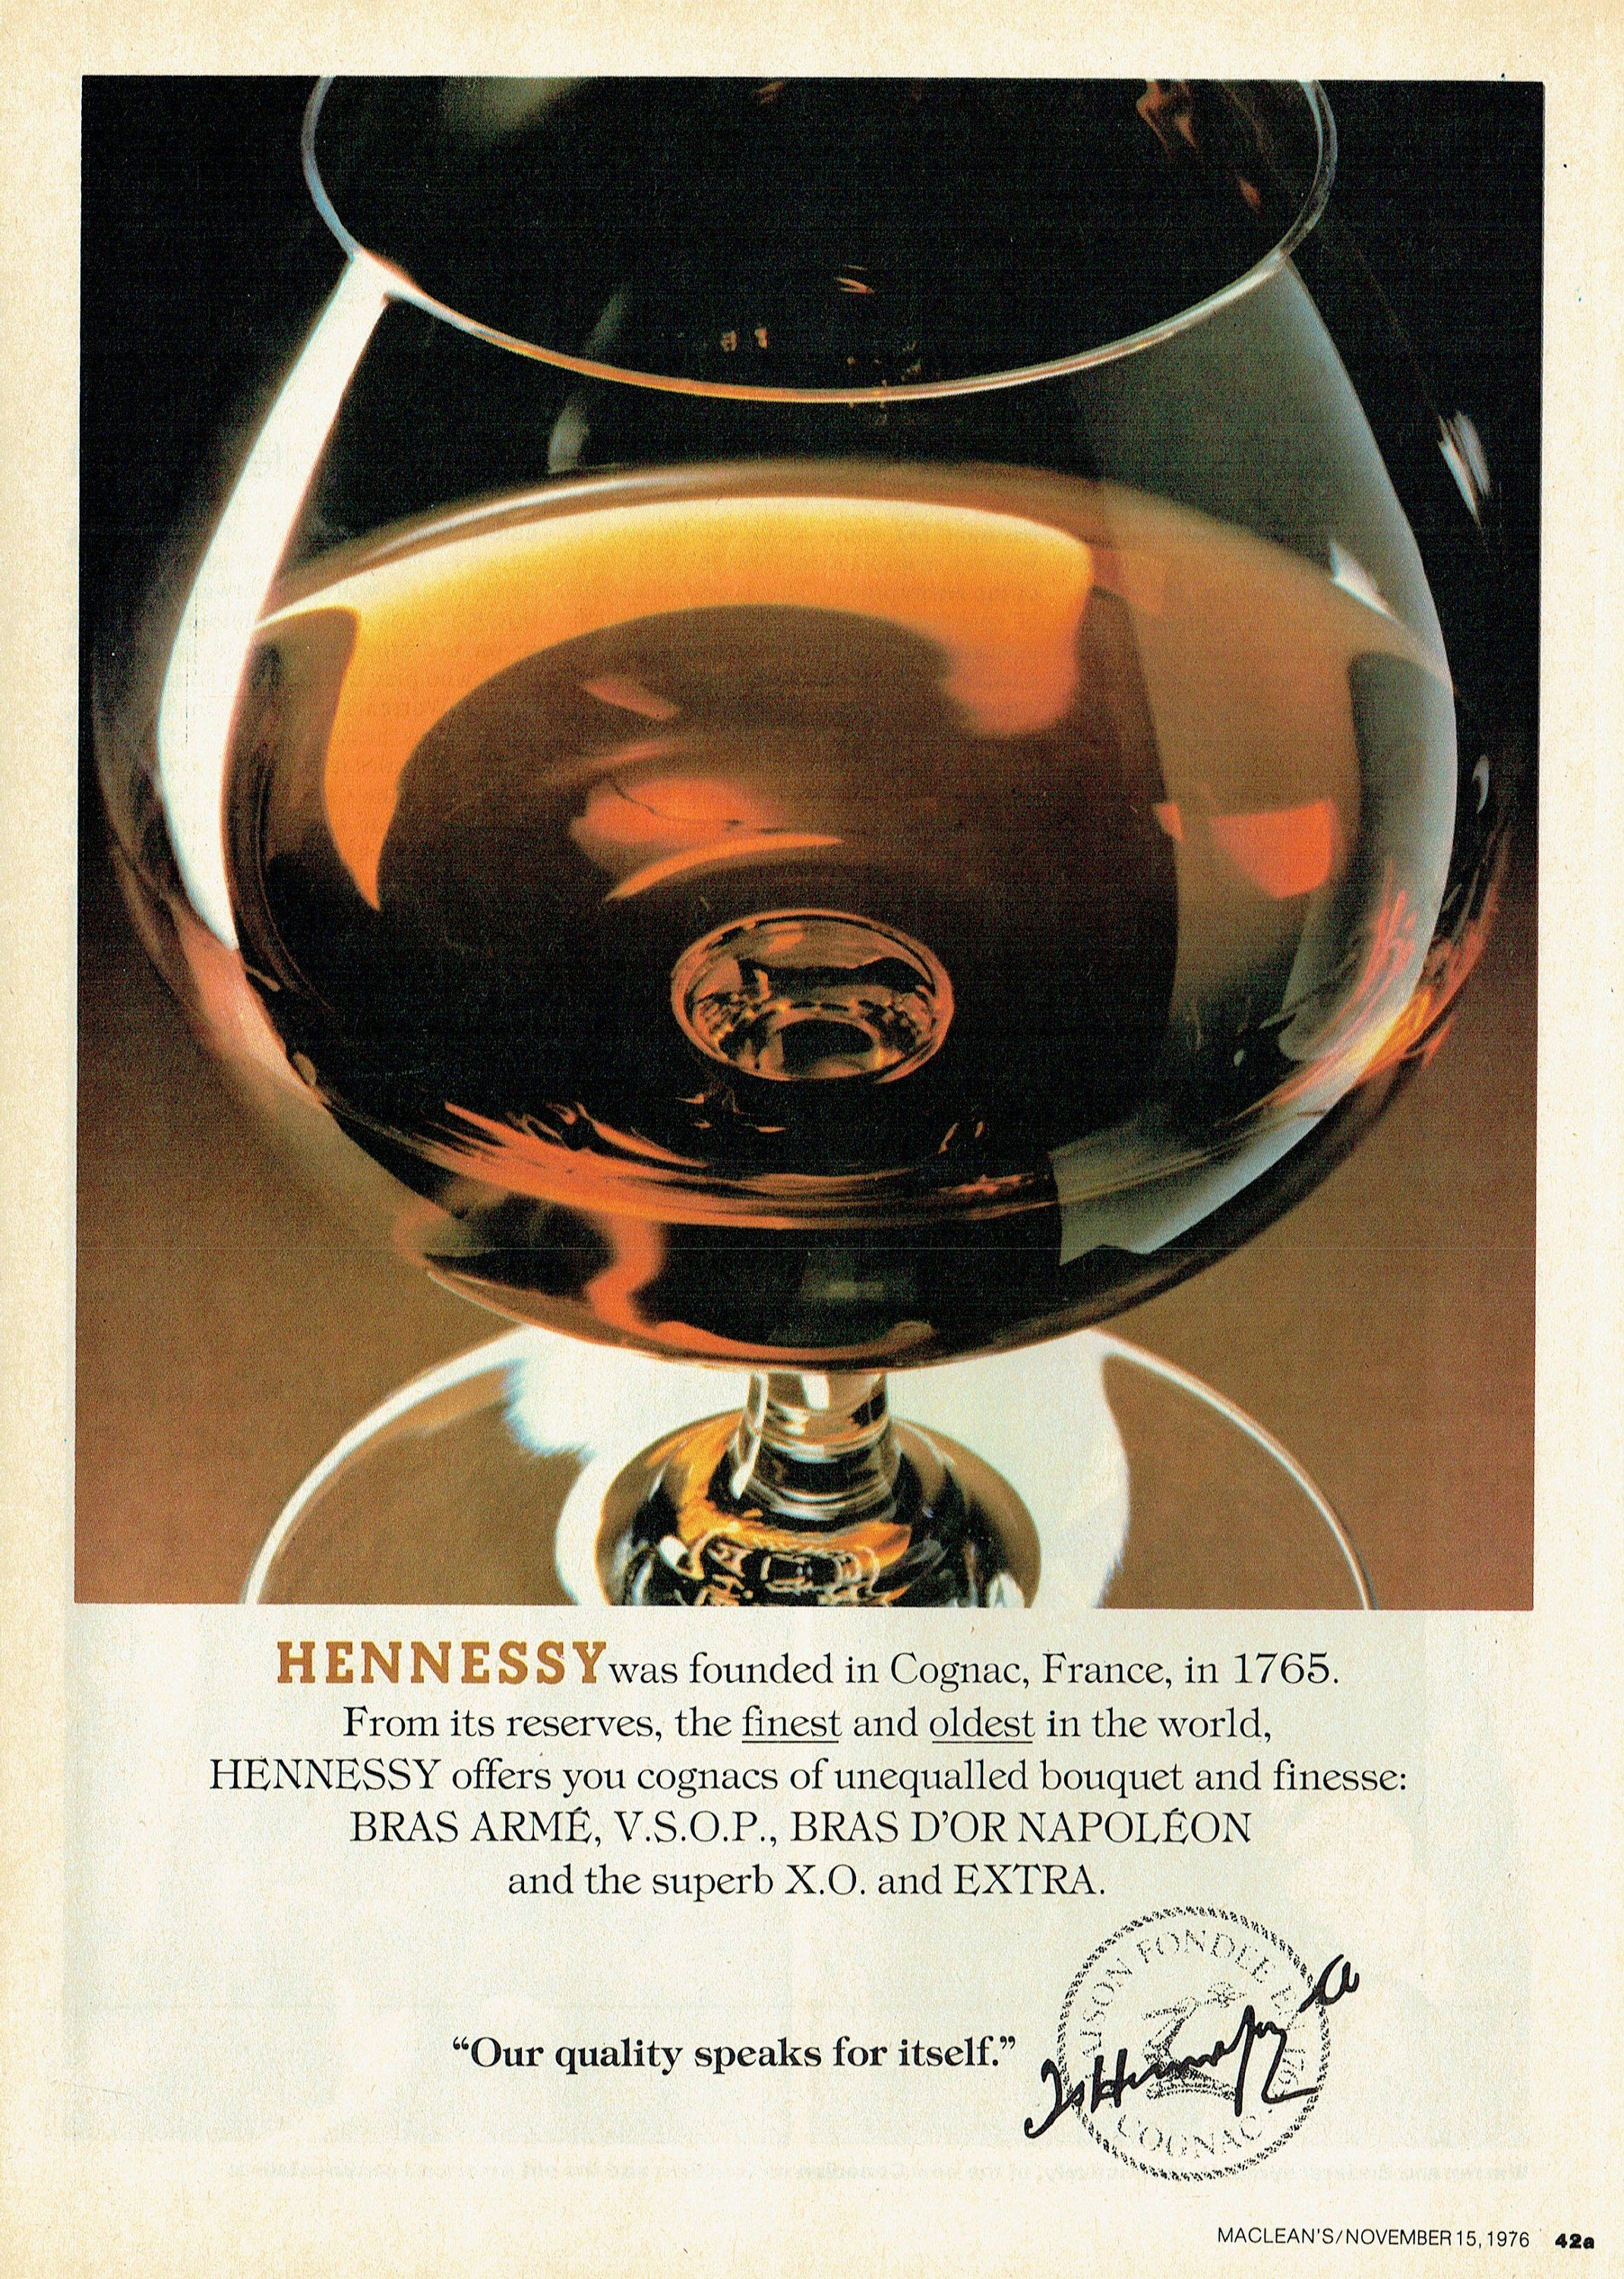 1989 Advertisement Hennessy Cognac You Re A Wanted Man Spirit Of Civilized Rogue Drinker Very Special 80s Bar Pub Rest Hennessy Beer Advertising Wall Art Decor